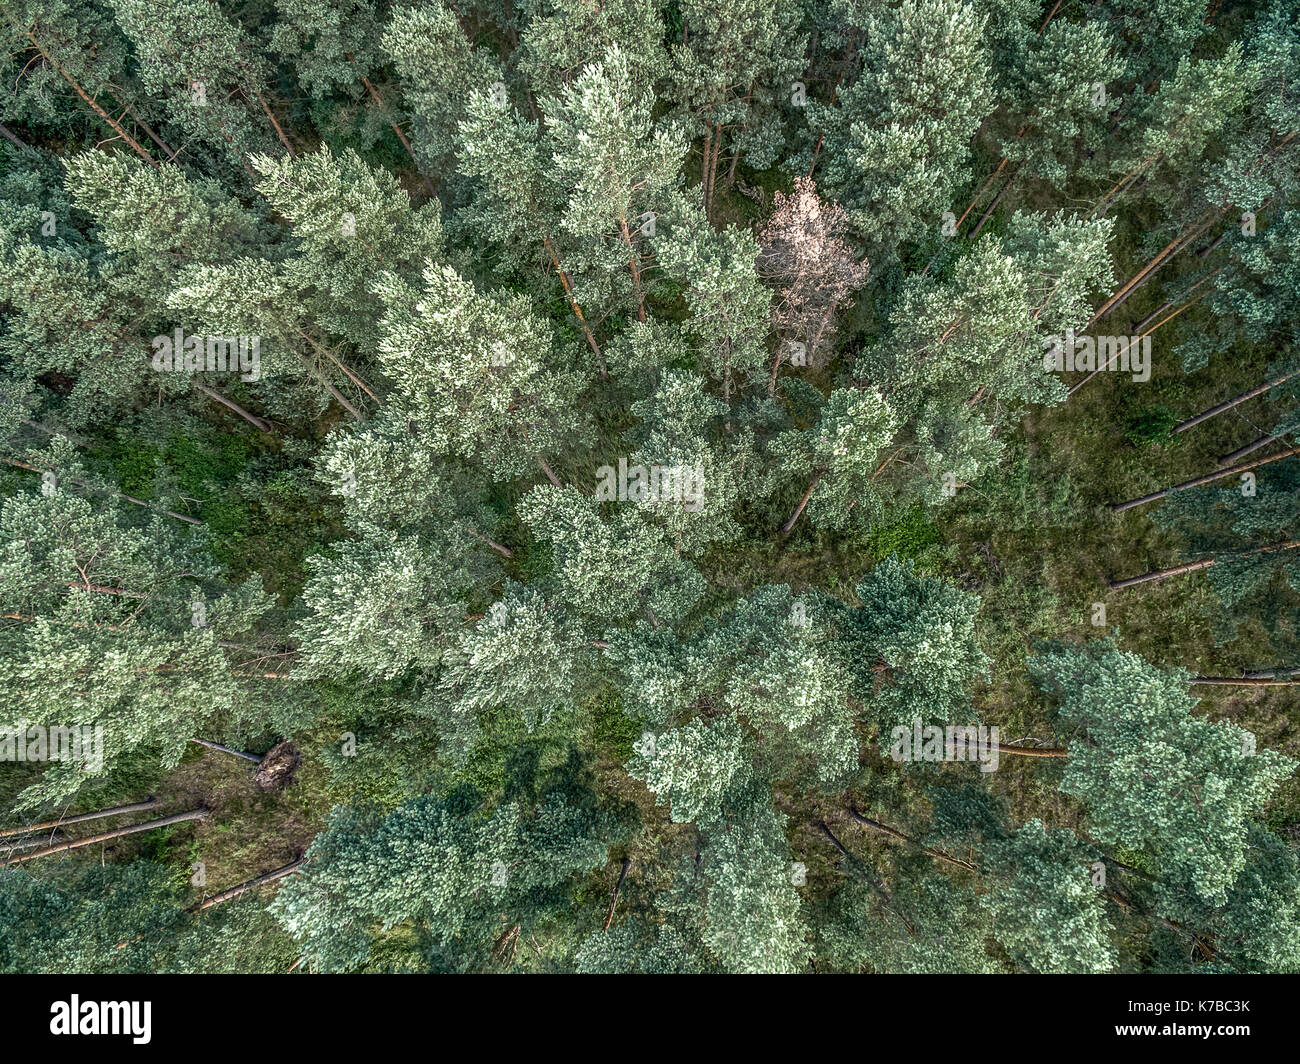 Coniferous forest, aerial photo with the copter, vertically down, abstract effect - Stock Image